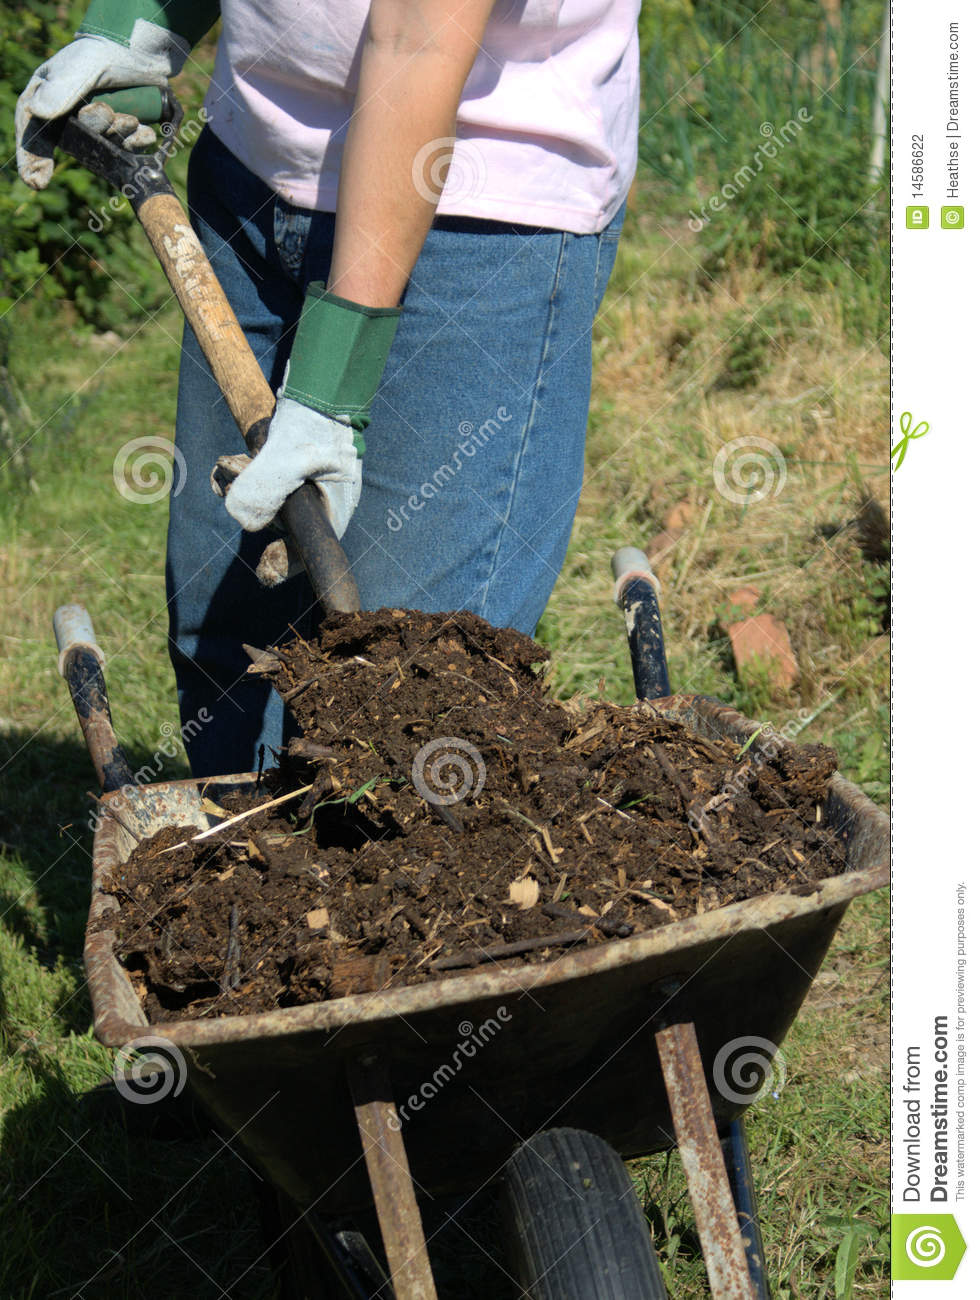 Man unloading compost from a wheelbarrow